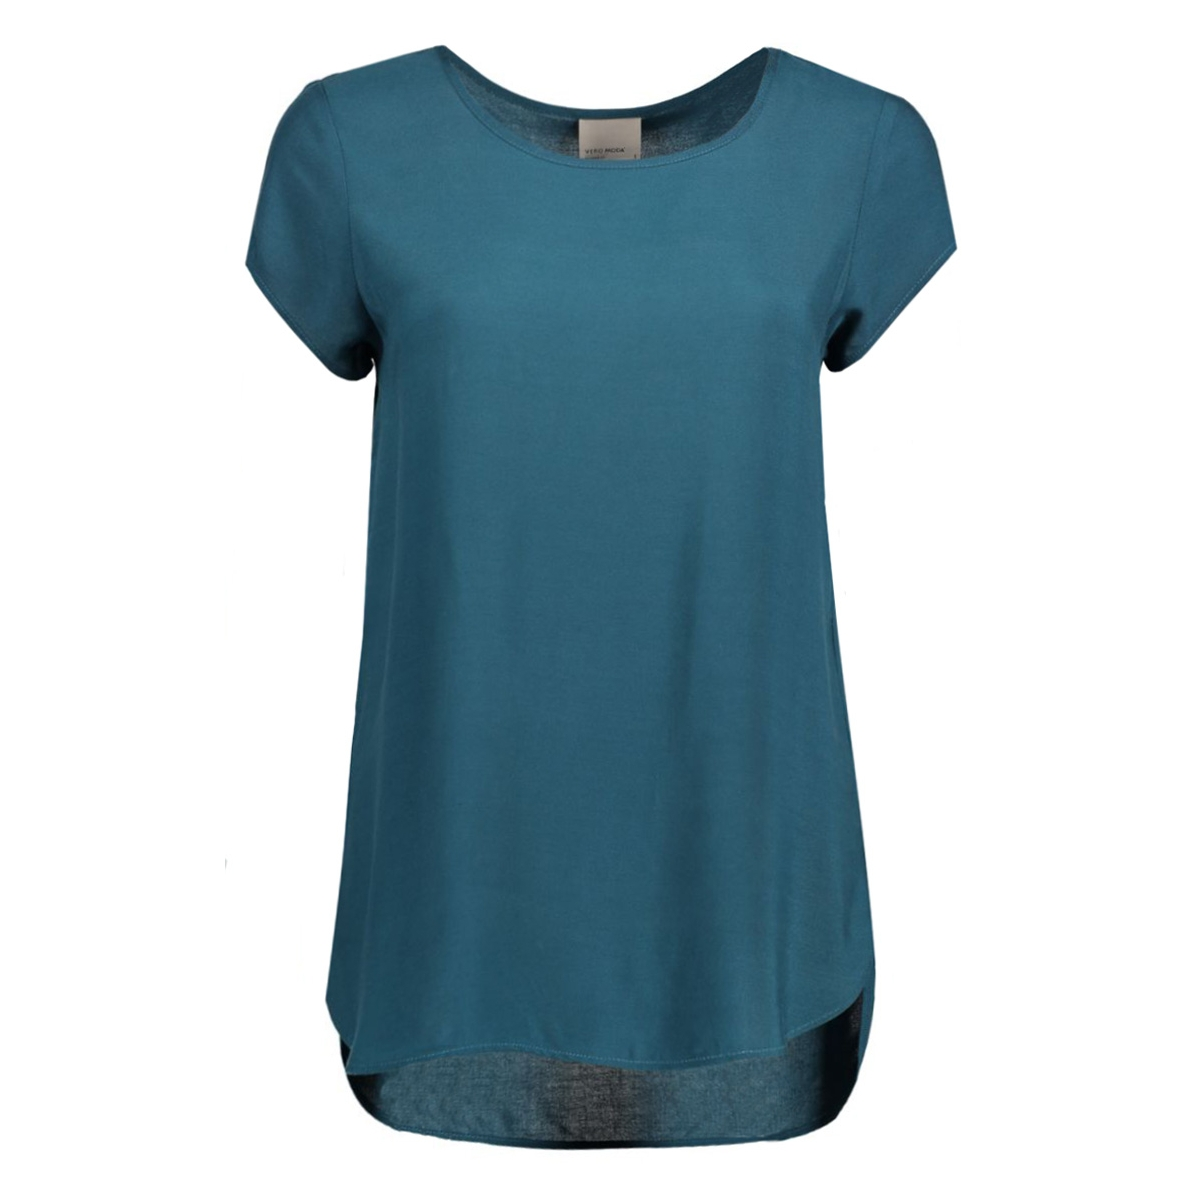 boca ss blouse color 10104053 vero moda t-shirt reflecting pond